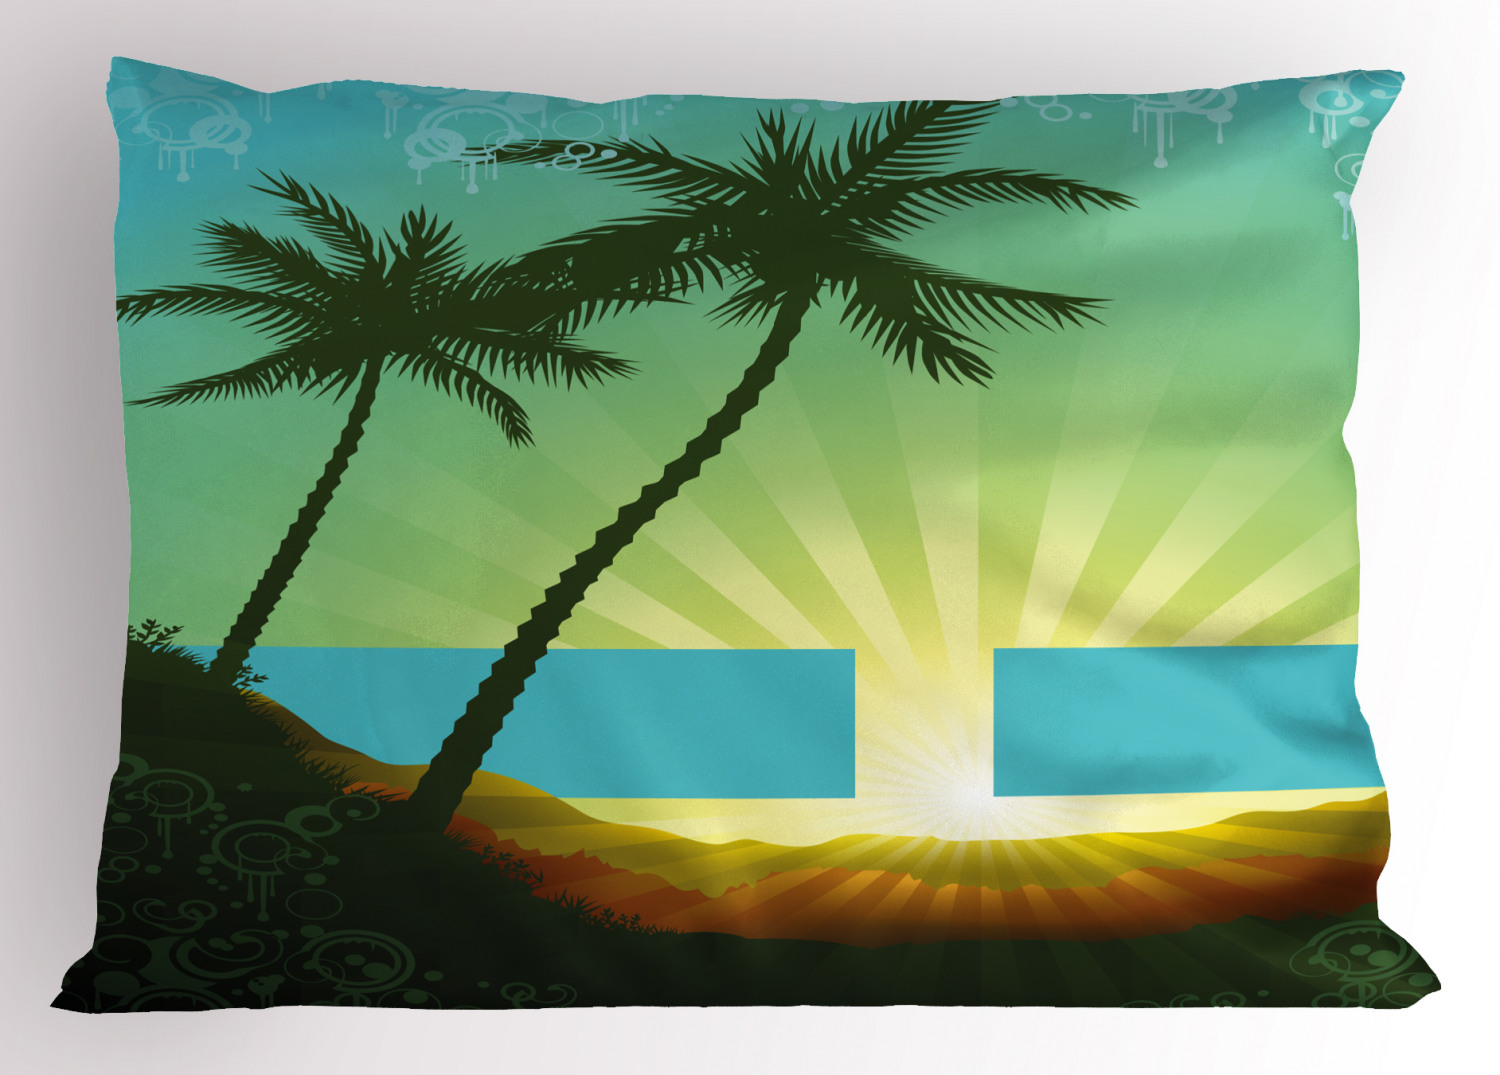 Island Pillow Sham Sunrise in a Tropical Place and Palm Trees Silhouettes  Illustration Art, Decorative Standard King Size Printed Pillowcase, 20 X 20  ...